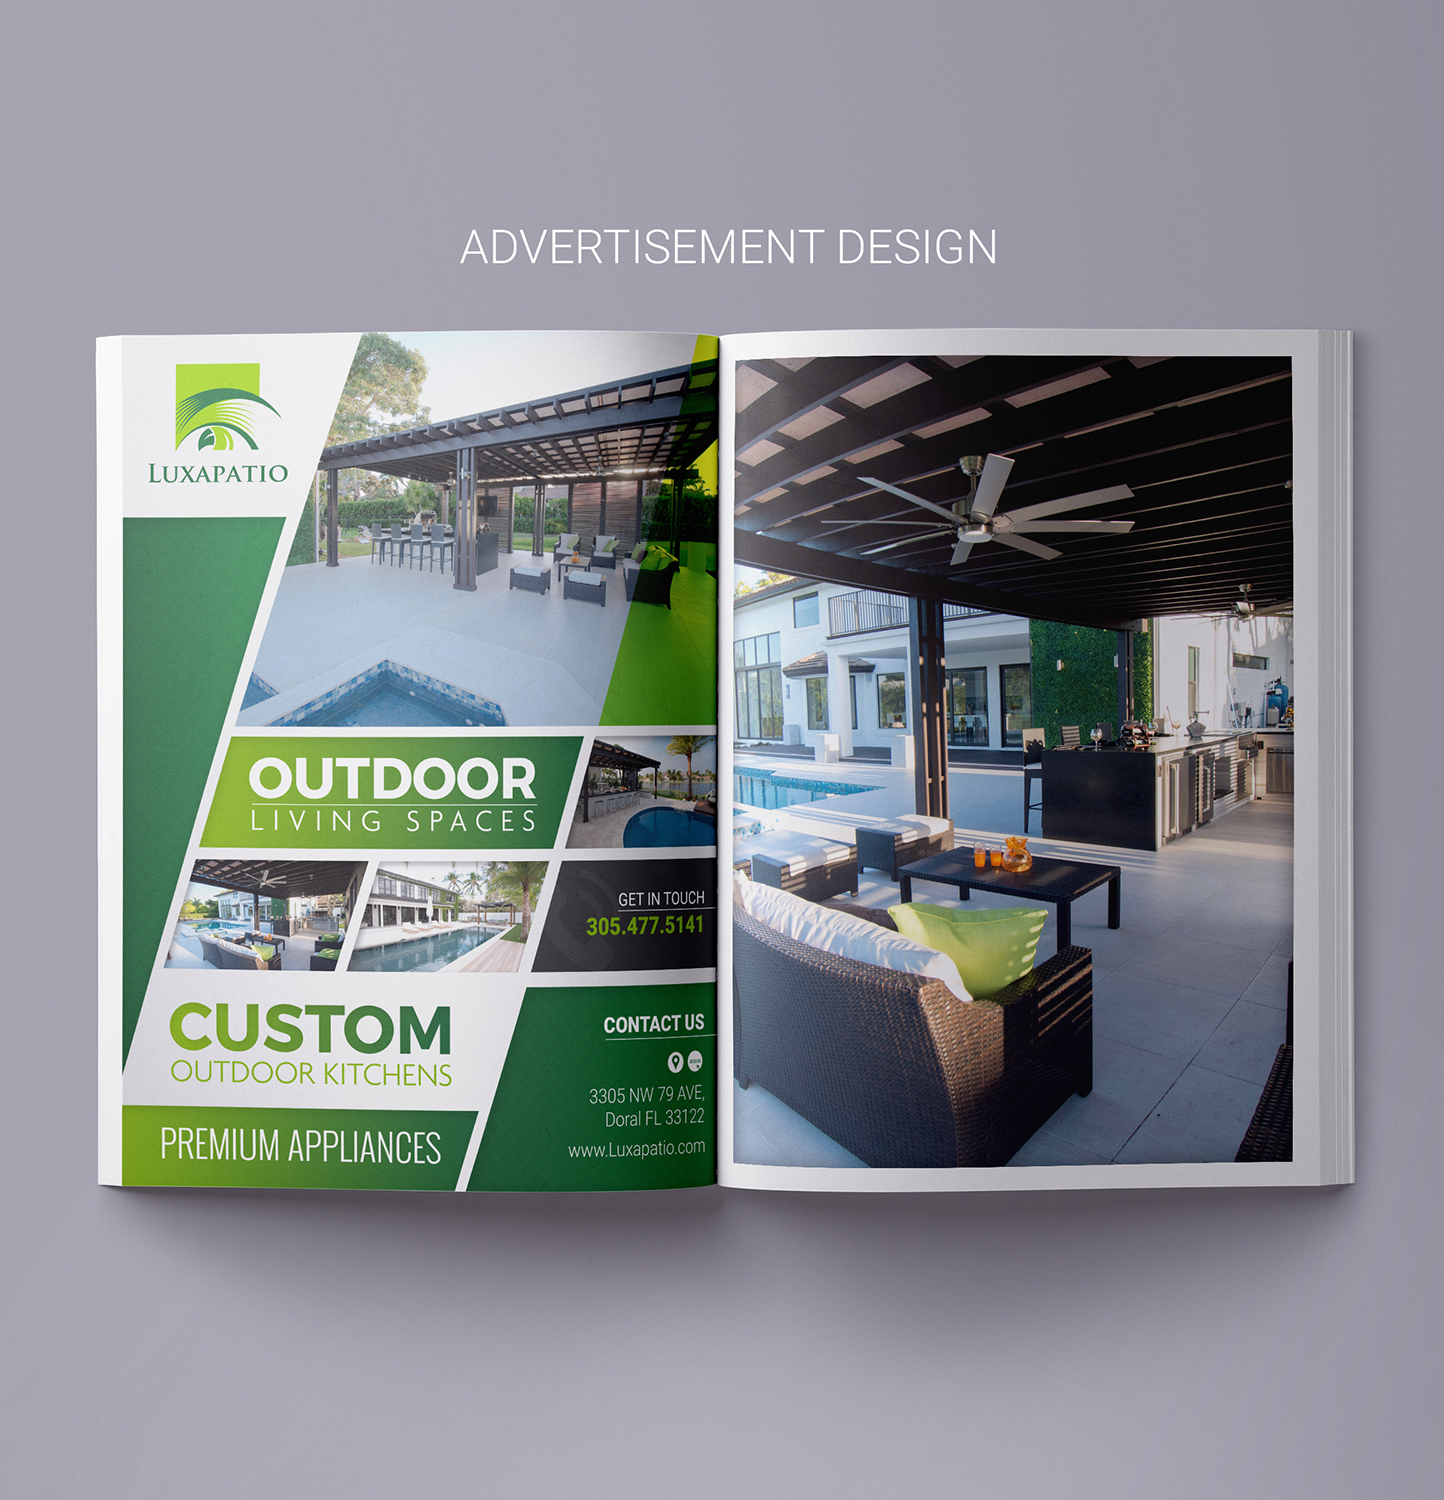 Advertisement Design By SD WEBCREATION For This Project | Design #17066205